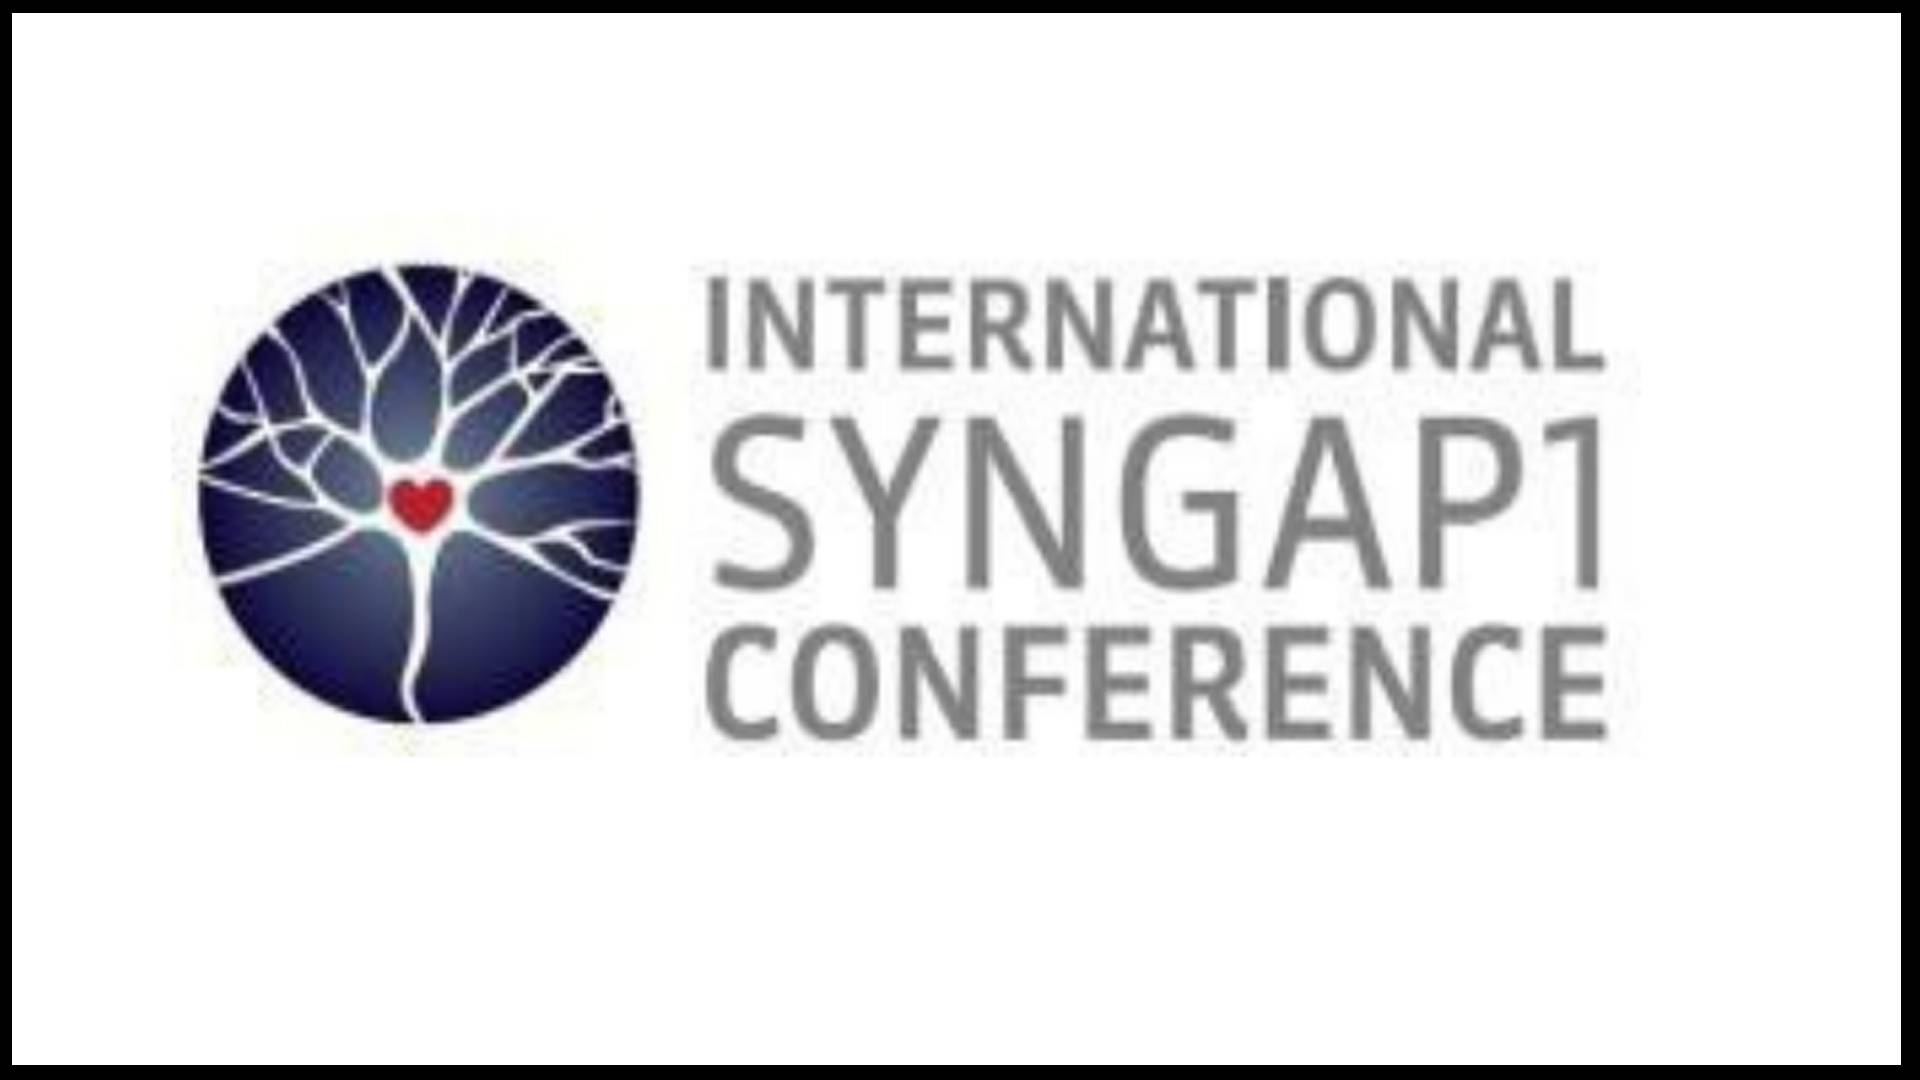 Syngap1 Conference